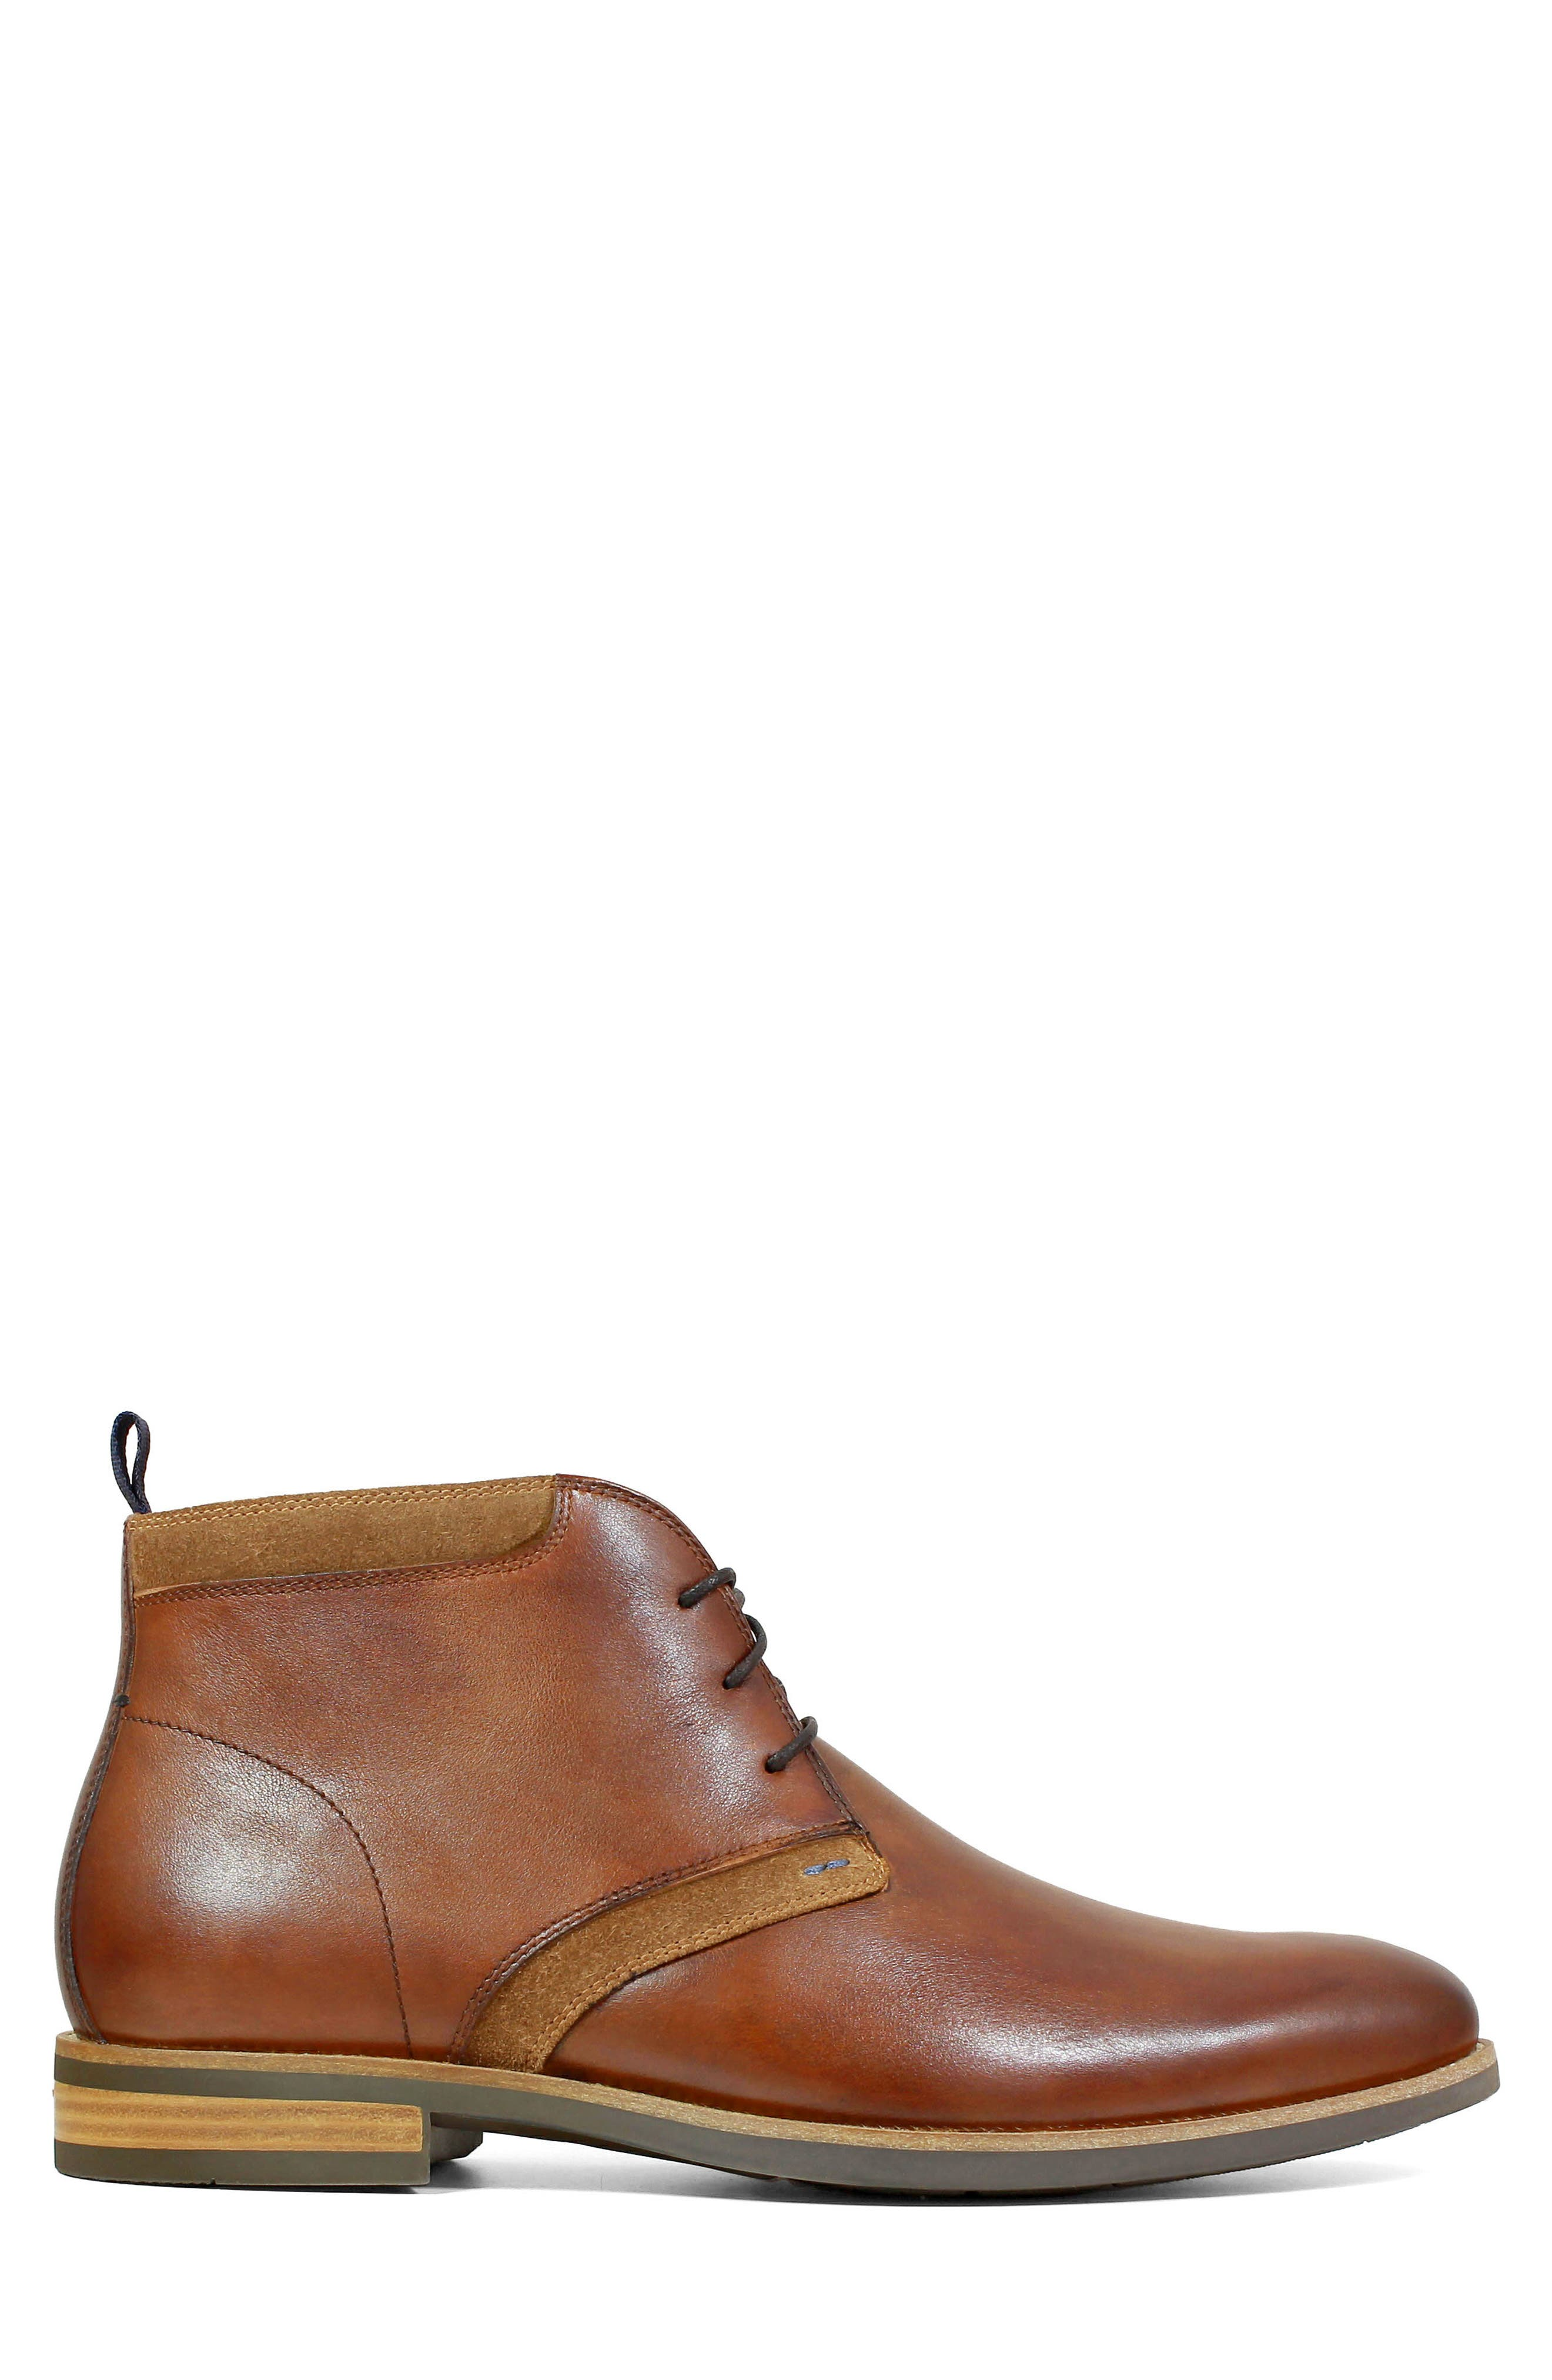 Uptown Chukka Boot,                             Alternate thumbnail 3, color,                             COGNAC LEATHER